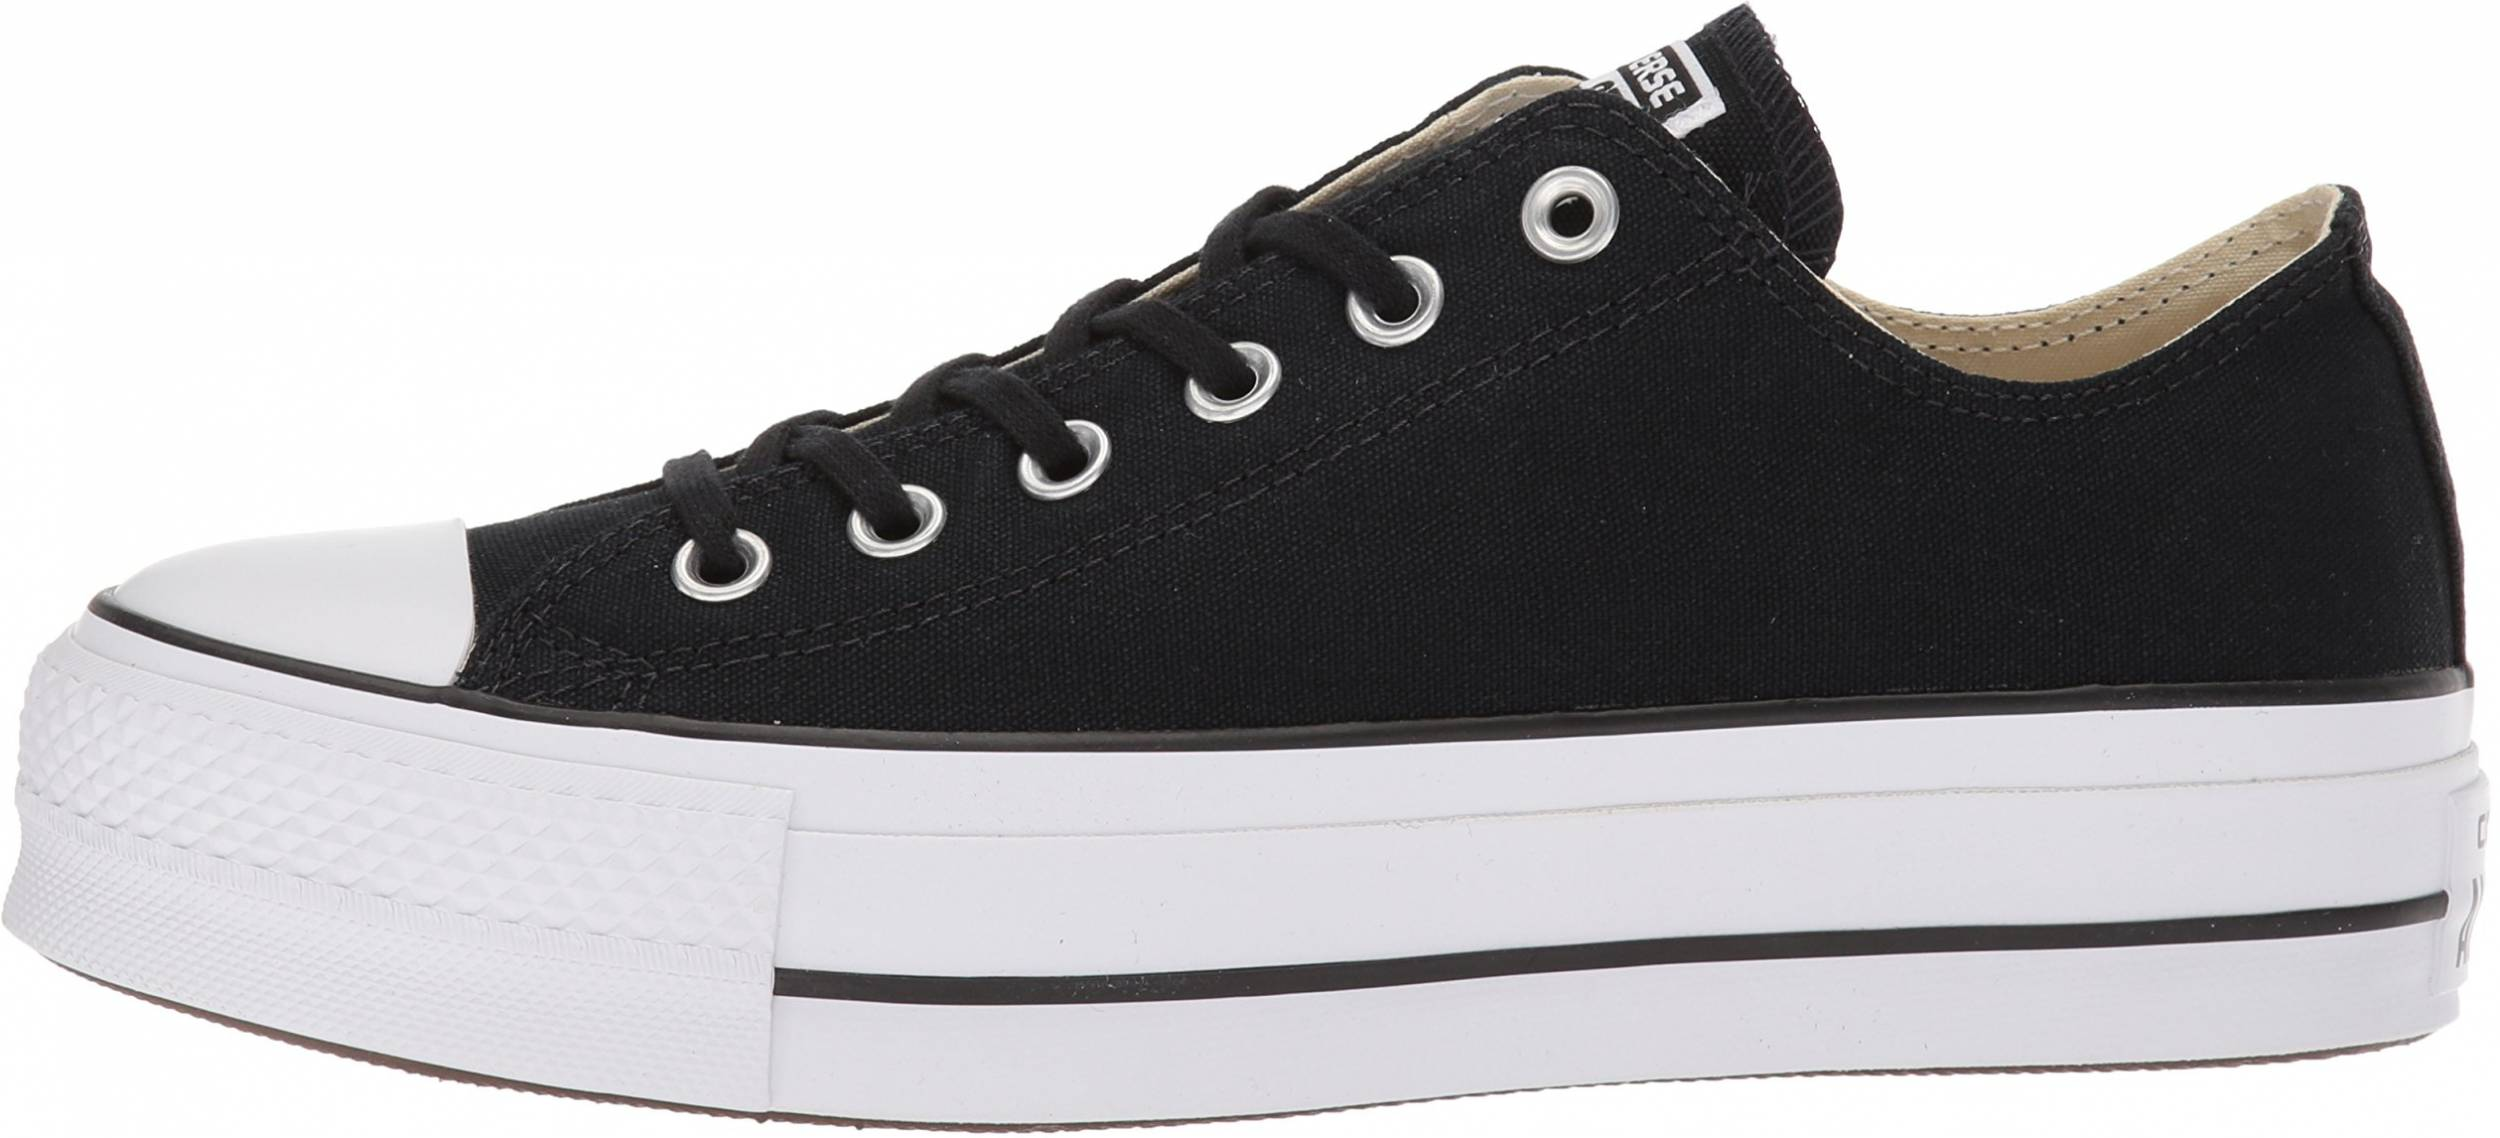 Converse Chuck Taylor All Star Lift Canvas Low Top sneakers in ...